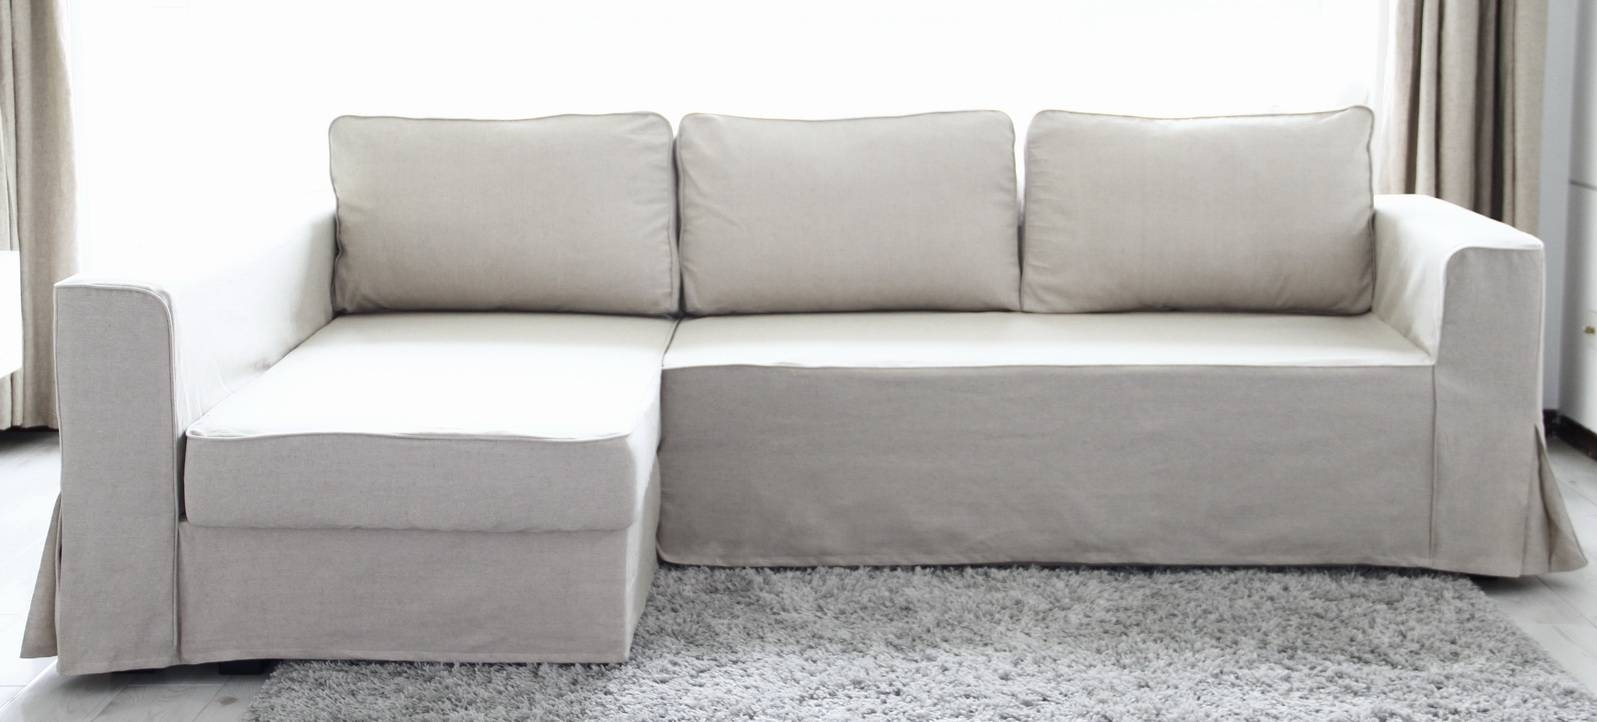 Furniture: Karlstad Sofa Cover | Ikea Karlstad Sofa Cover | Ikea for Ikea Chaise Lounge Sofa (Image 13 of 30)